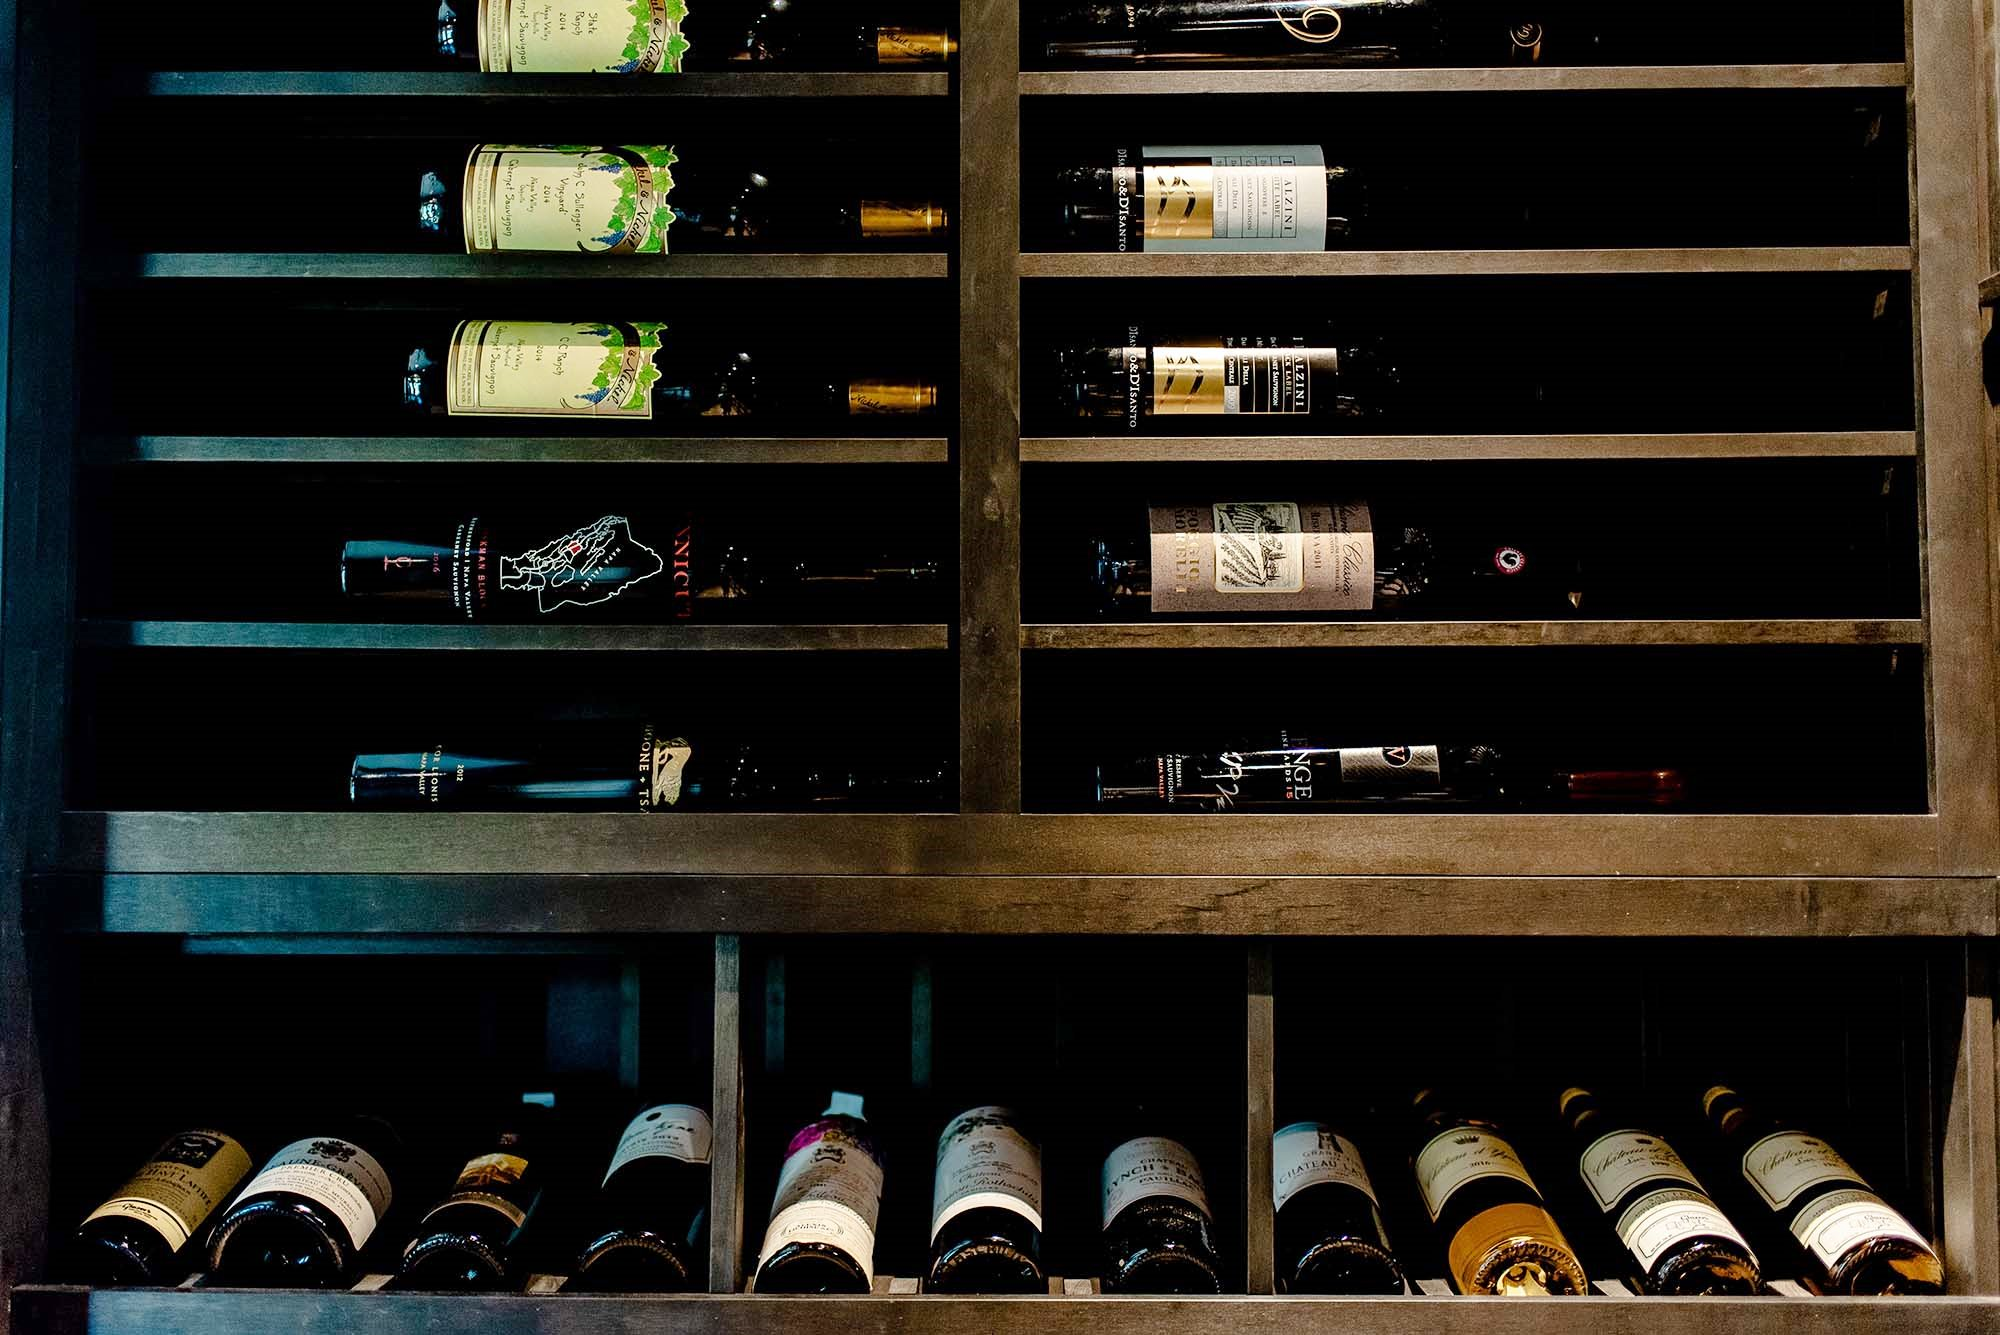 The Texas experts incorporated horizontal wine racks into the modern wine cellar design.